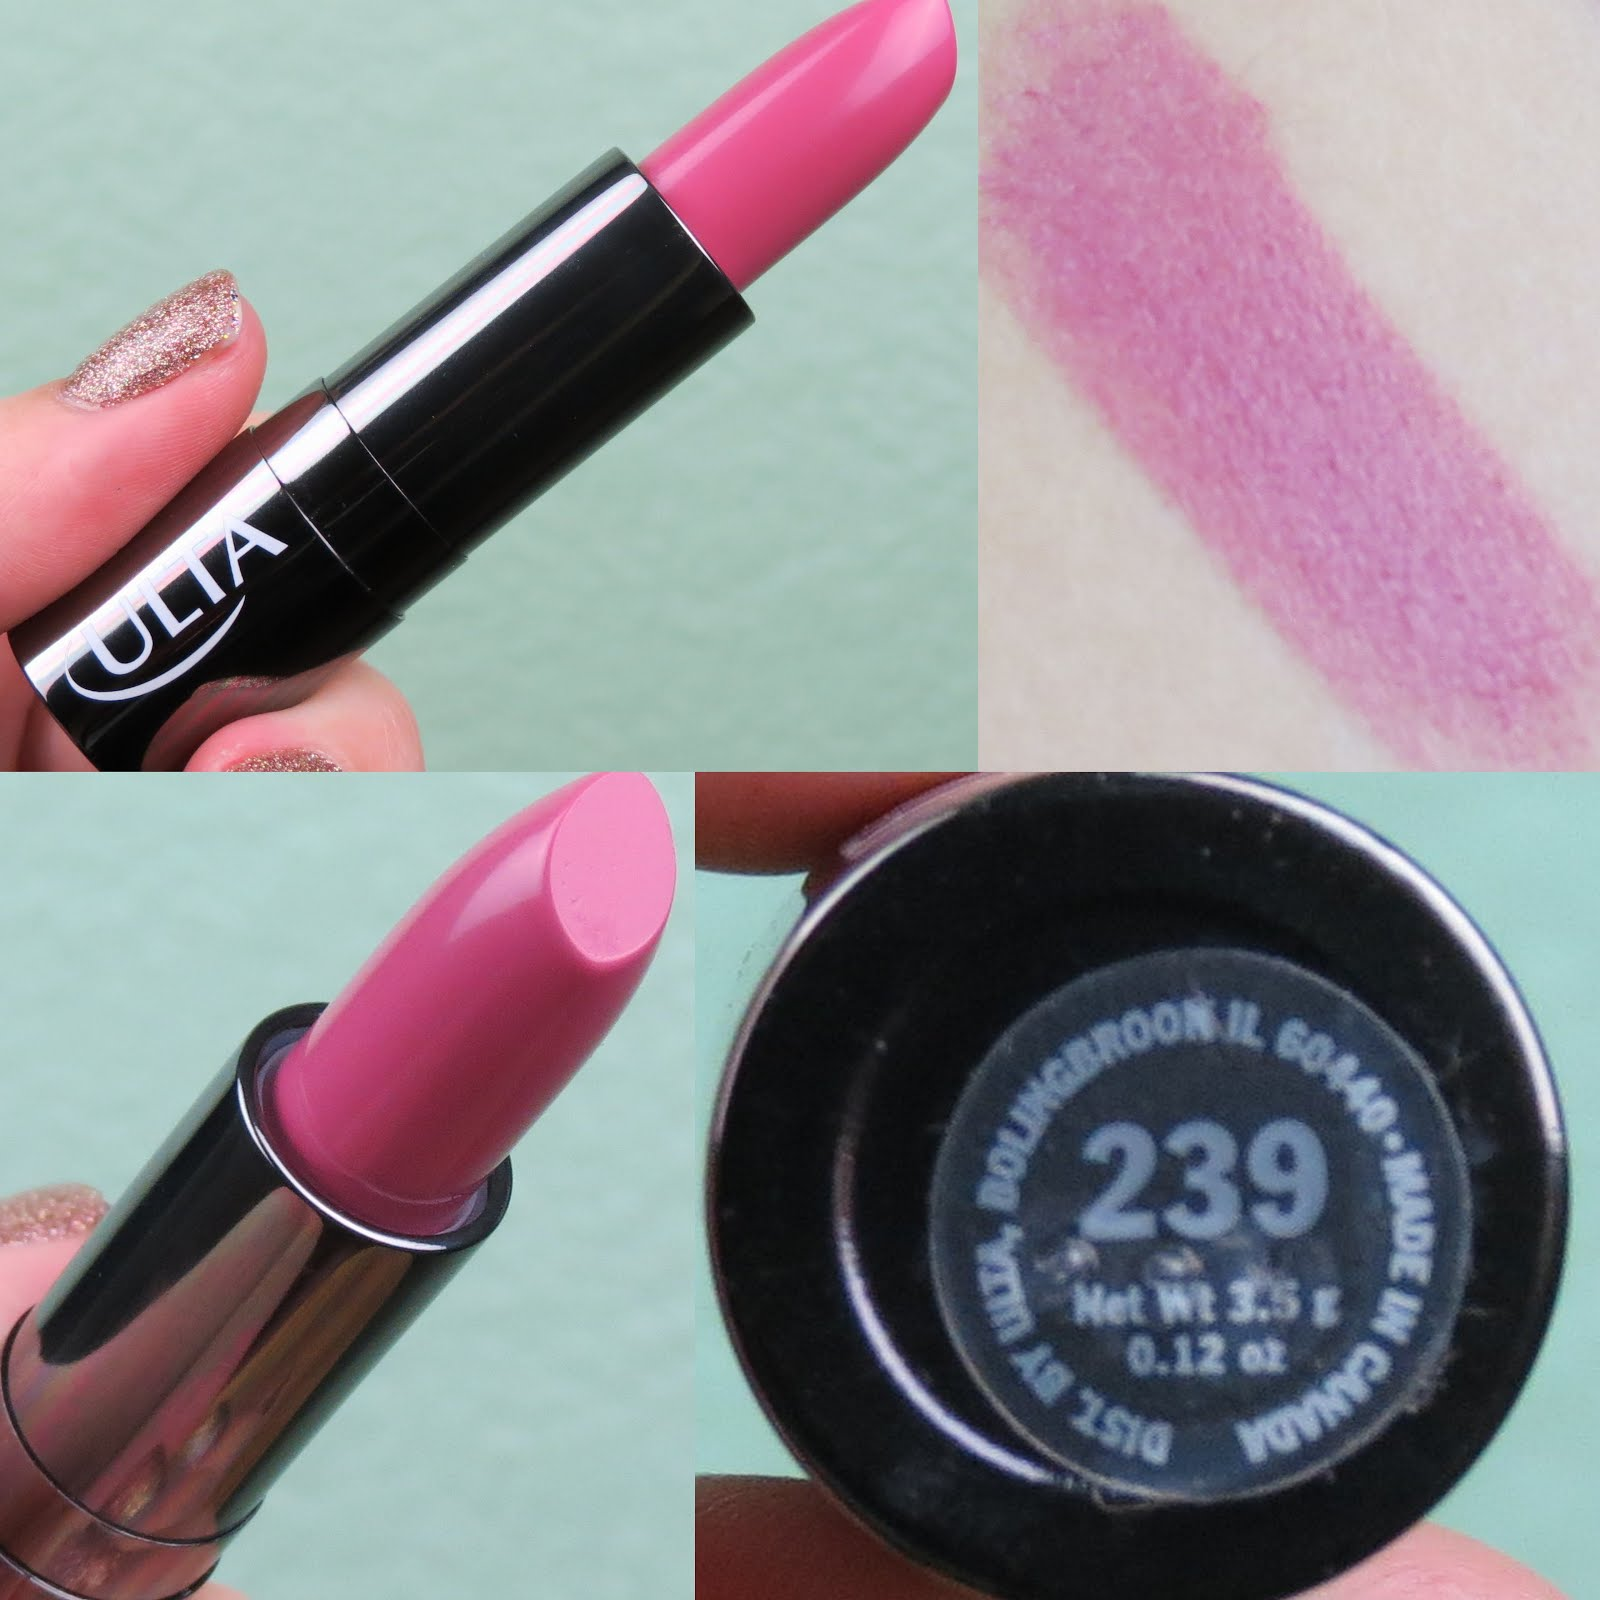 true beauty lies within you ulta birthday haul lip product